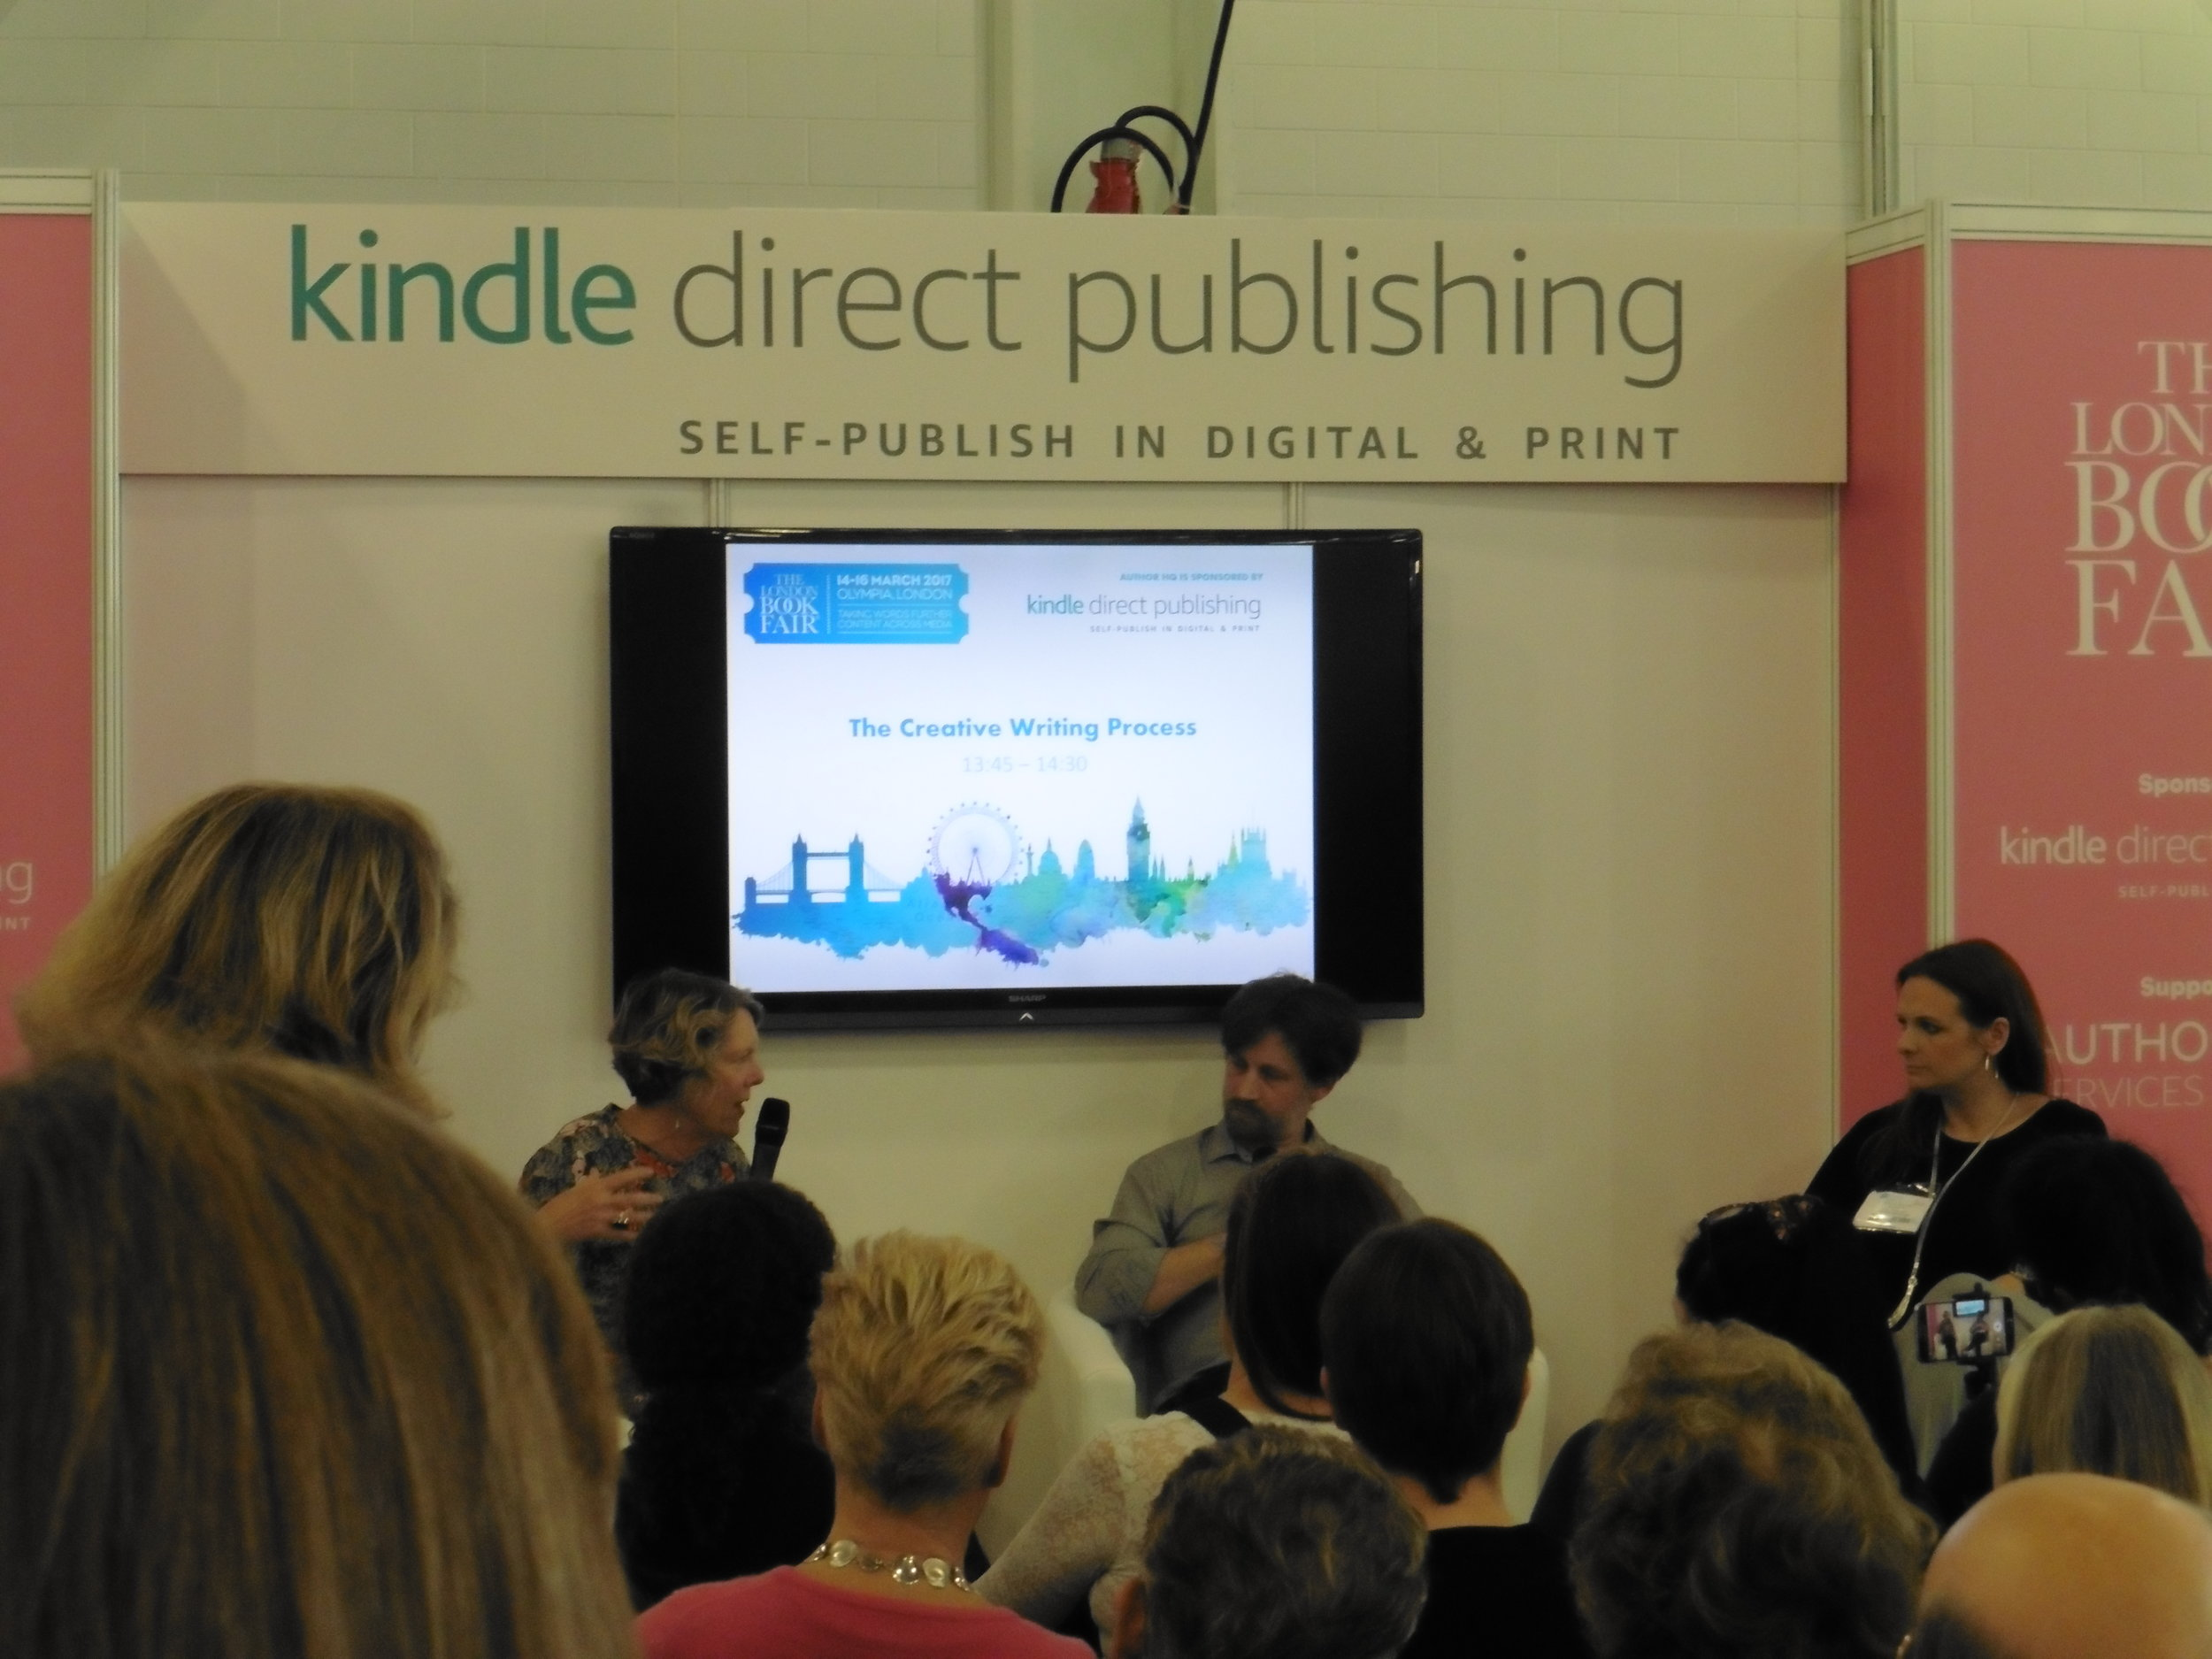 Rosanna Ley, Jonathan Telfer and Cally Taylor in conversation at the London Book Fair 2017. Photo by Terry Freedman